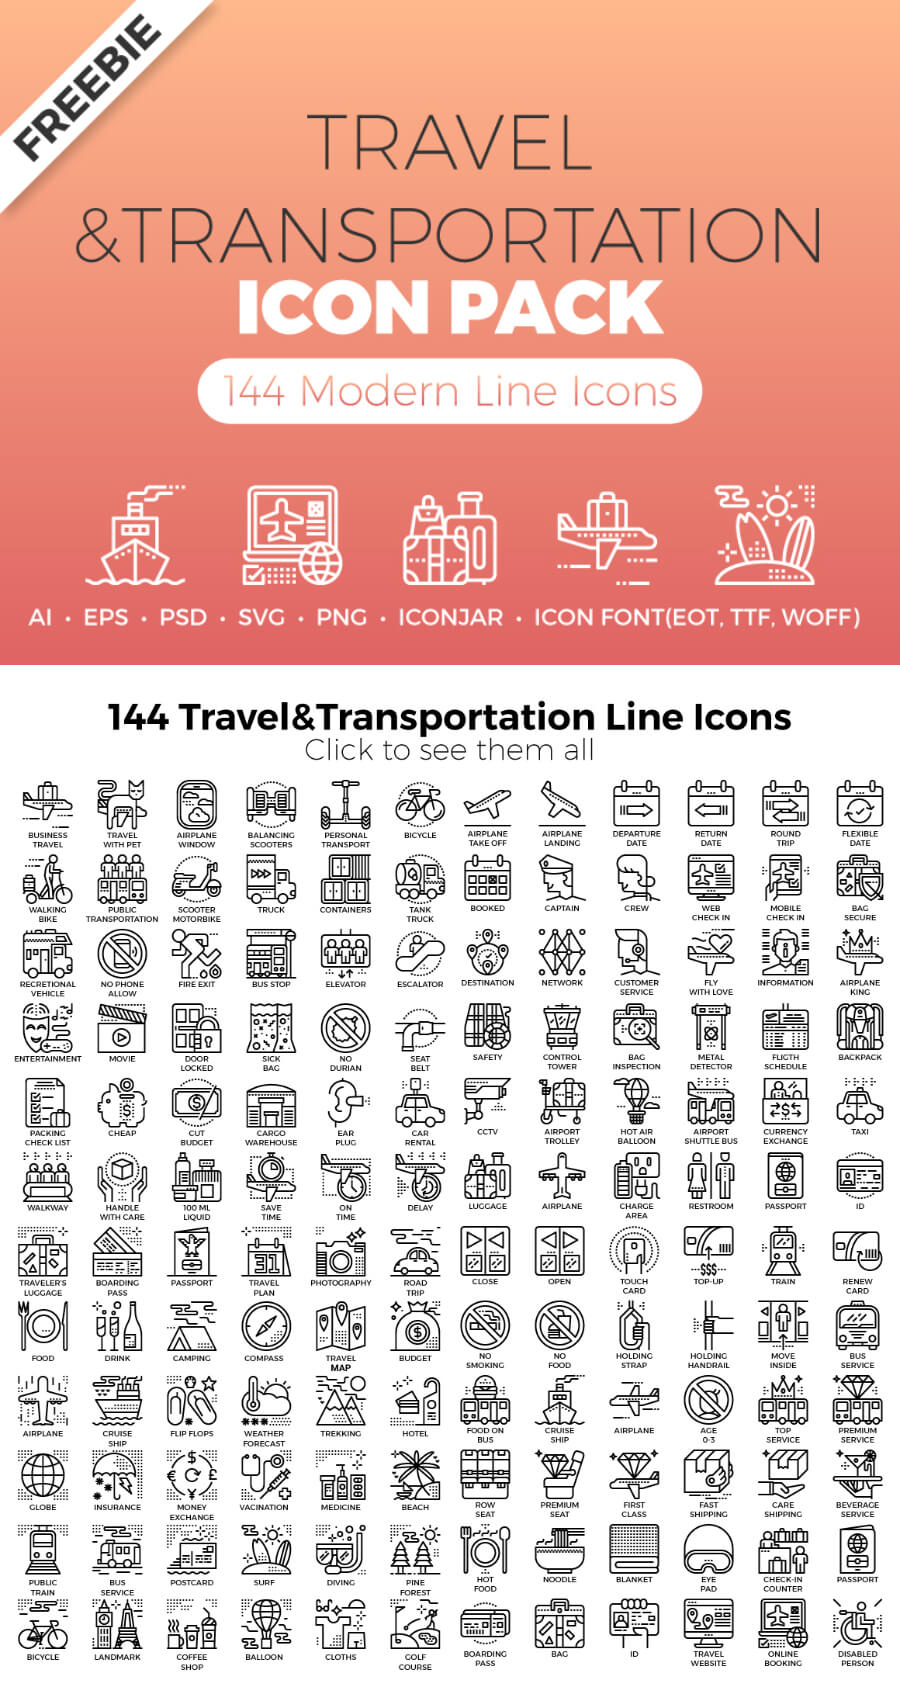 Free Travel Transportaion Icons